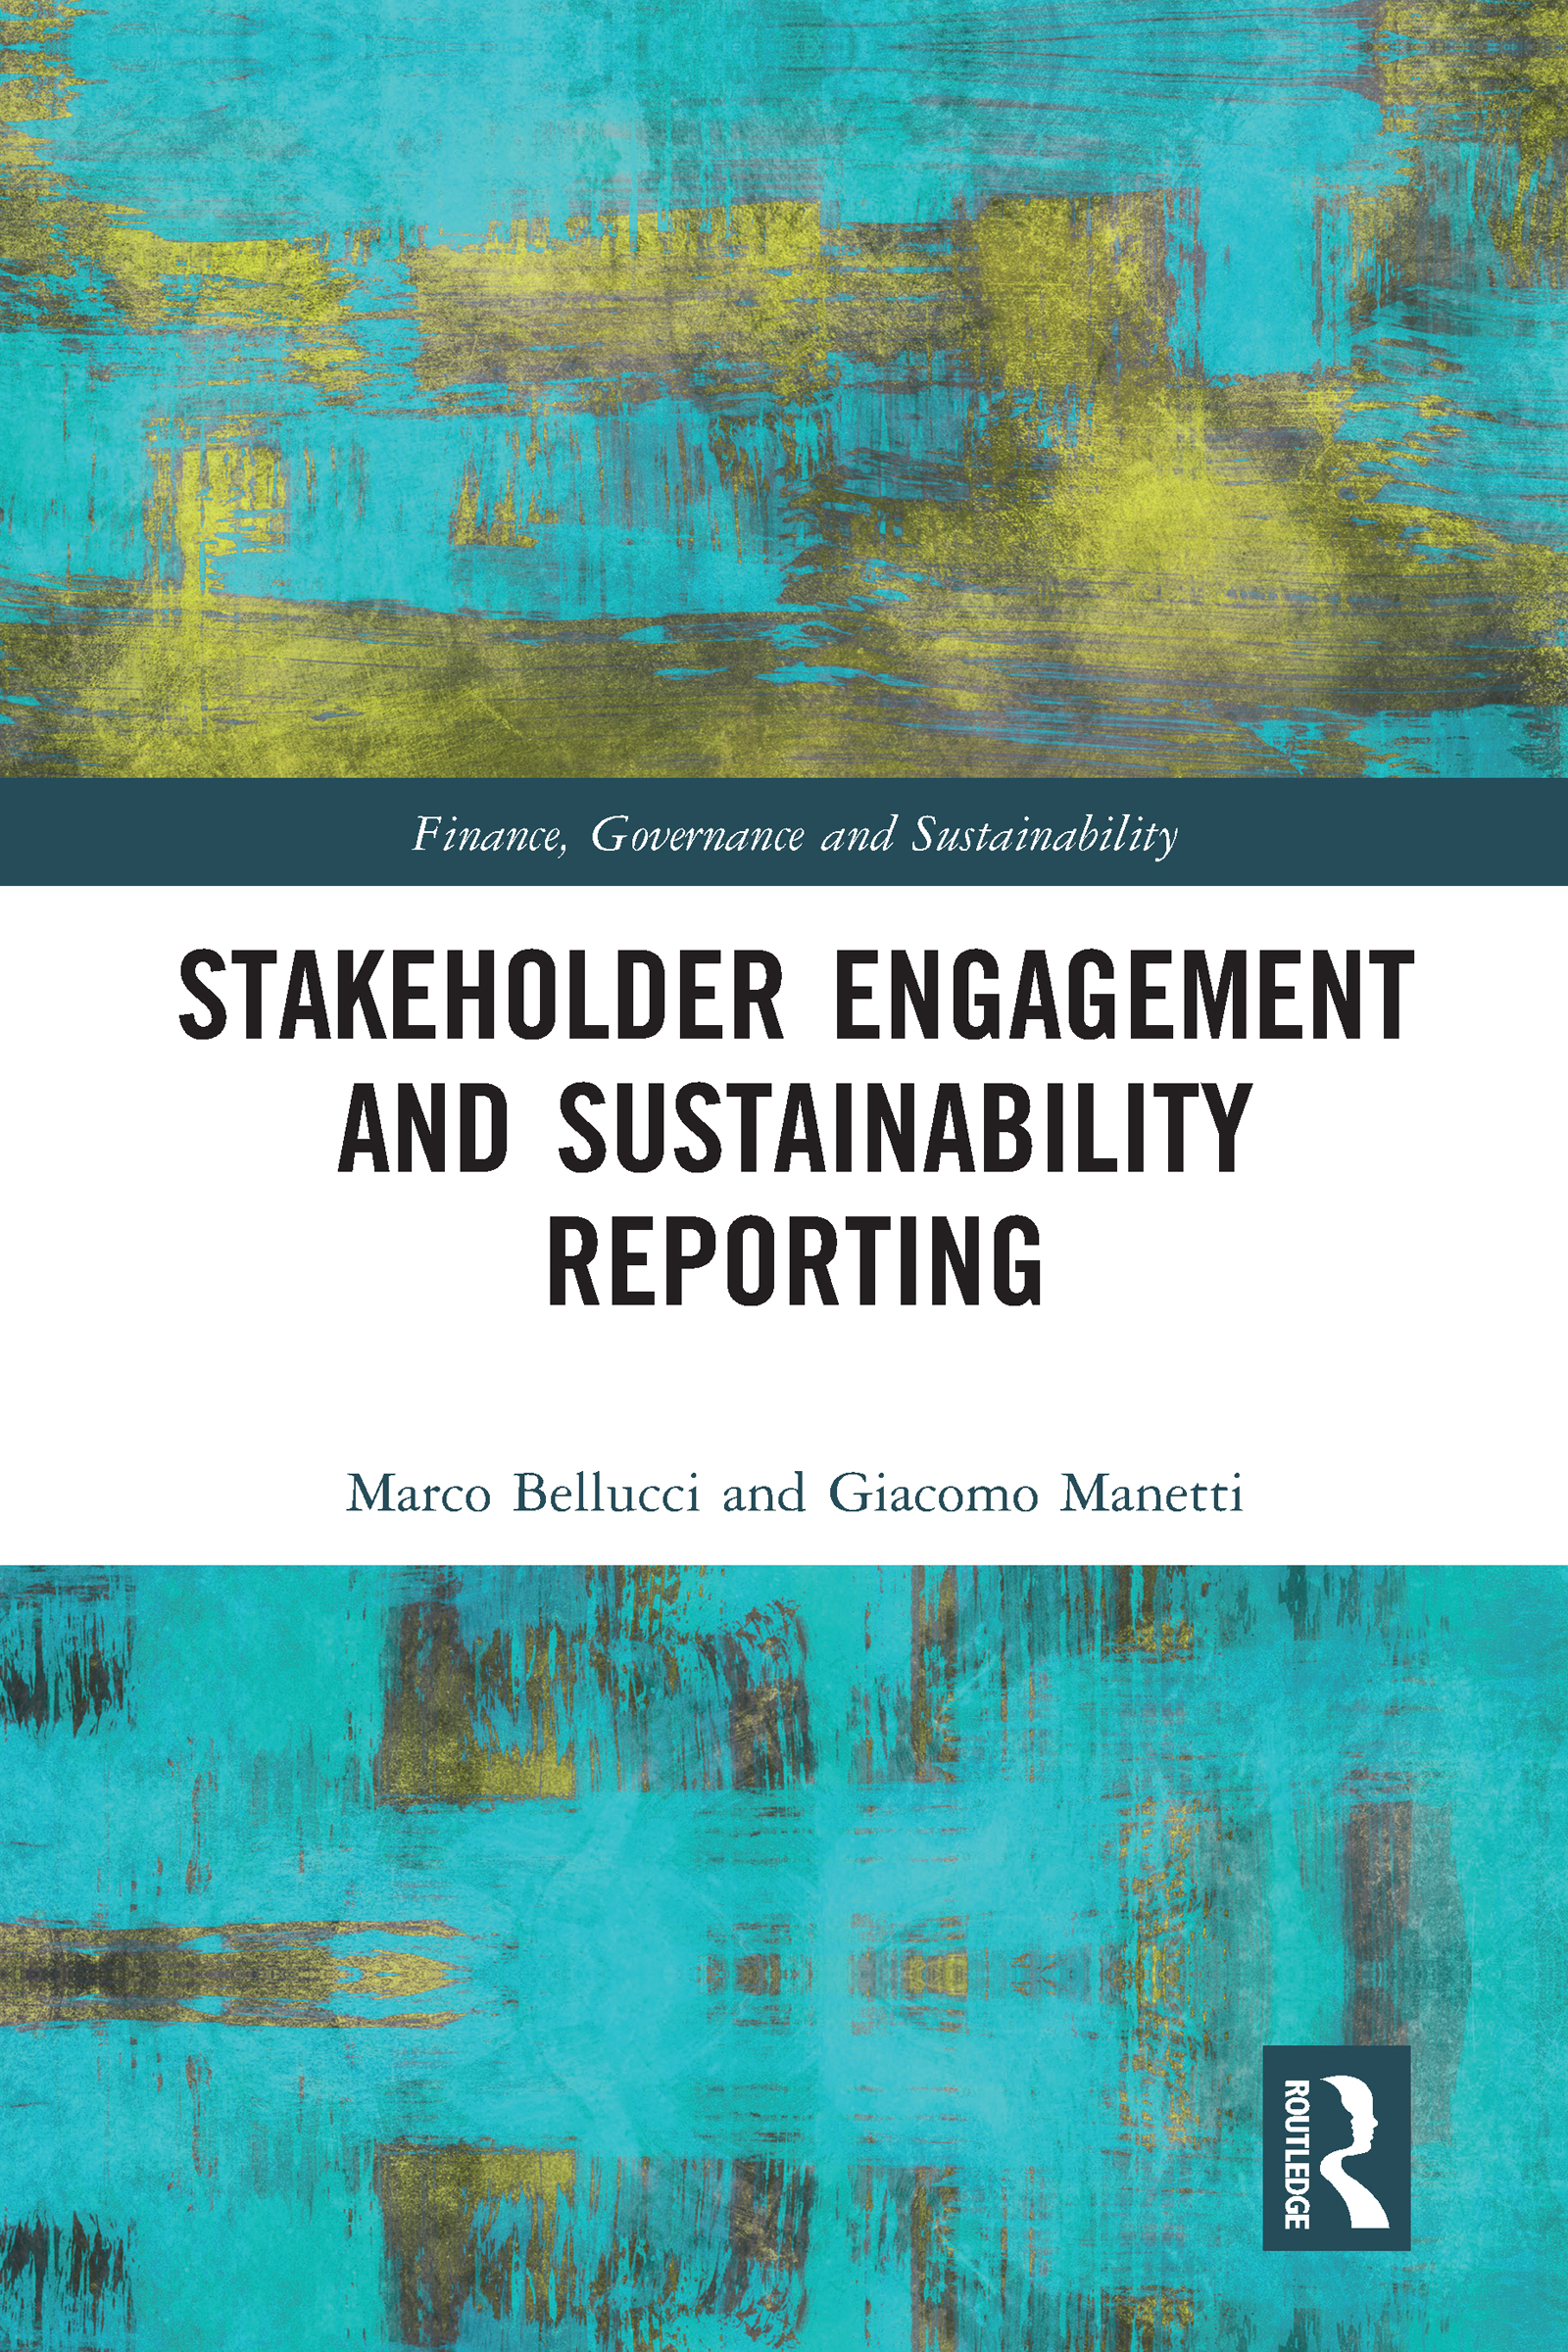 Stakeholder Engagement and Sustainability Reporting